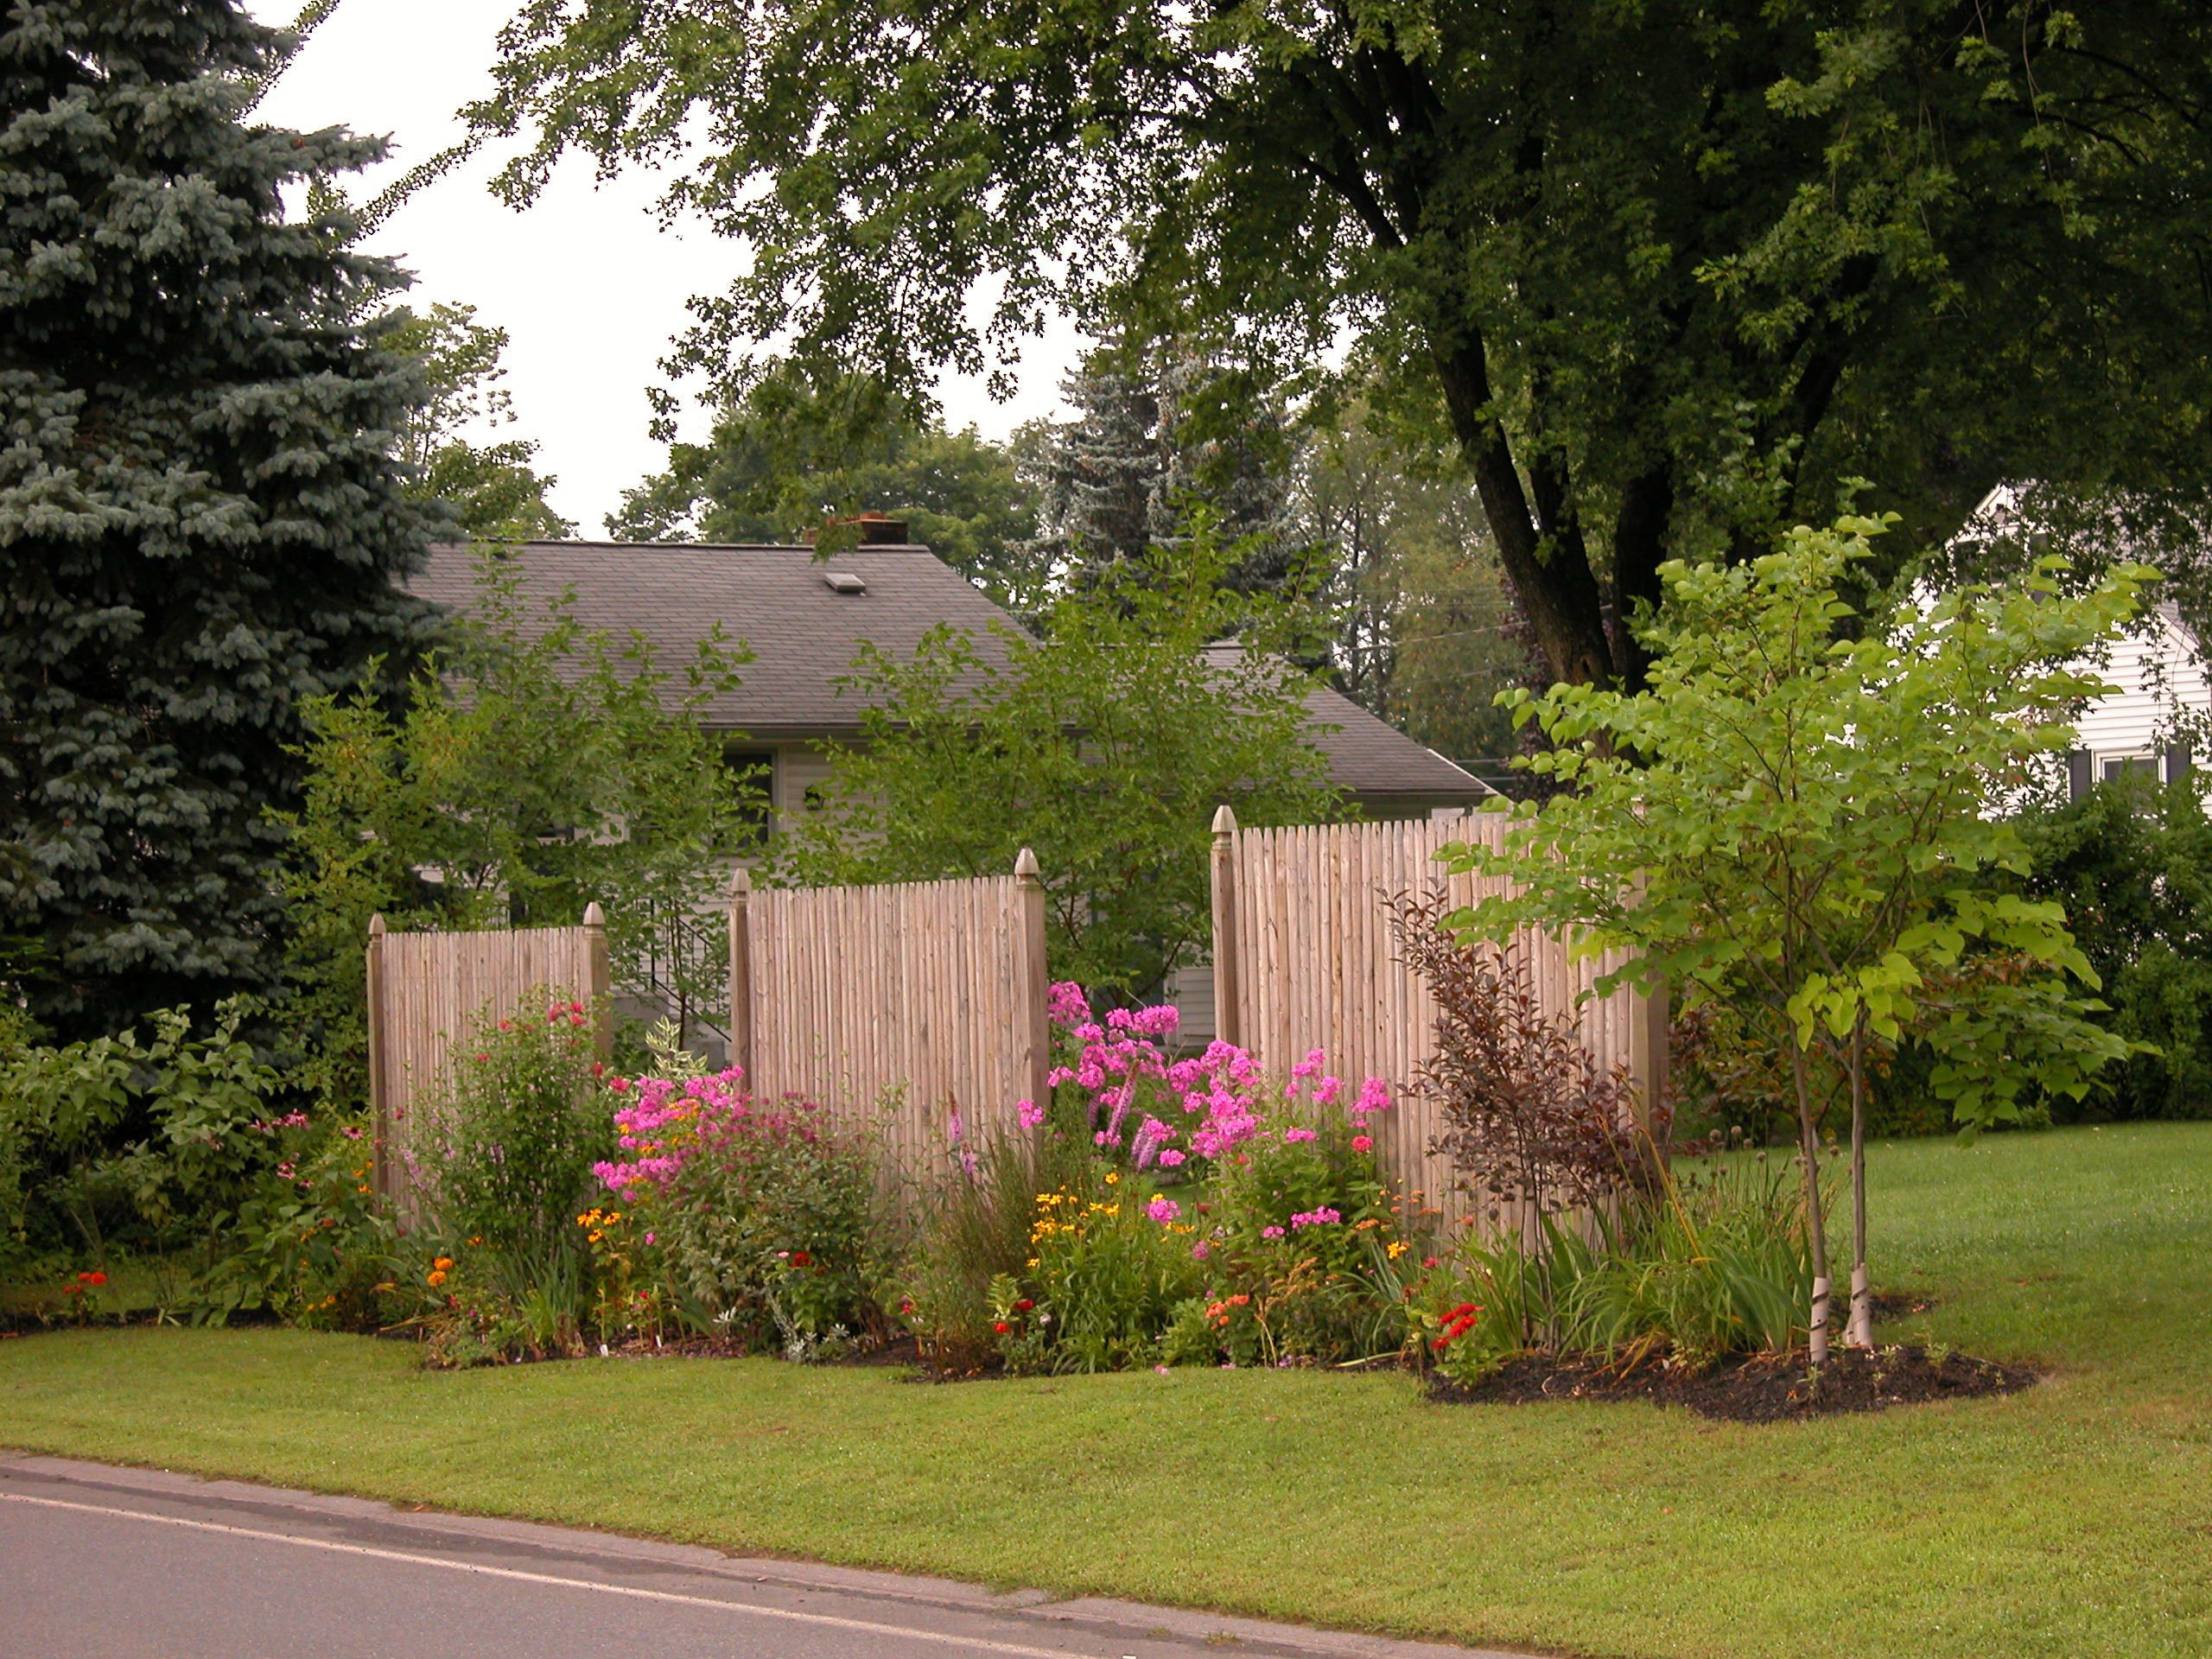 Brown fencing used to surround flowering garden.